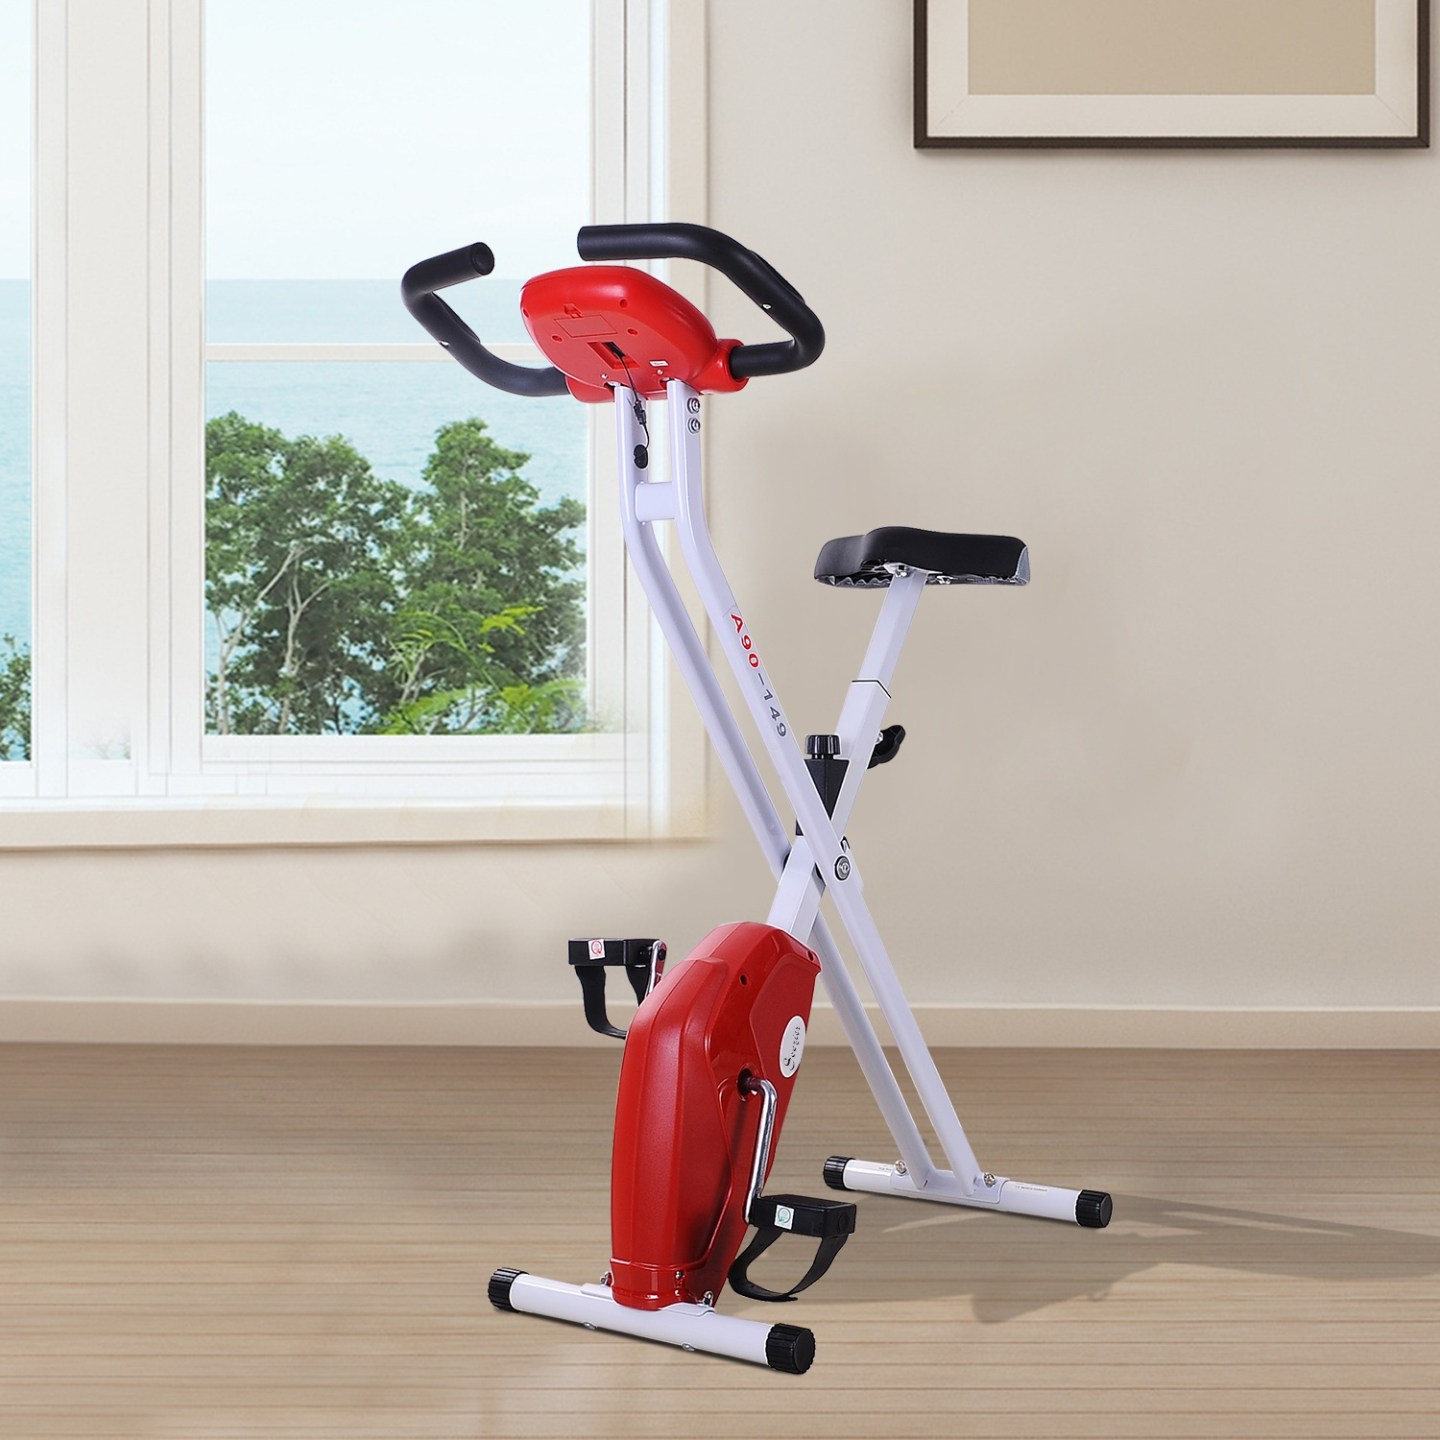 Soozier Slim Cycle Foldable Exercise Bike w/ LCD Monitor and Pulse Strength Training